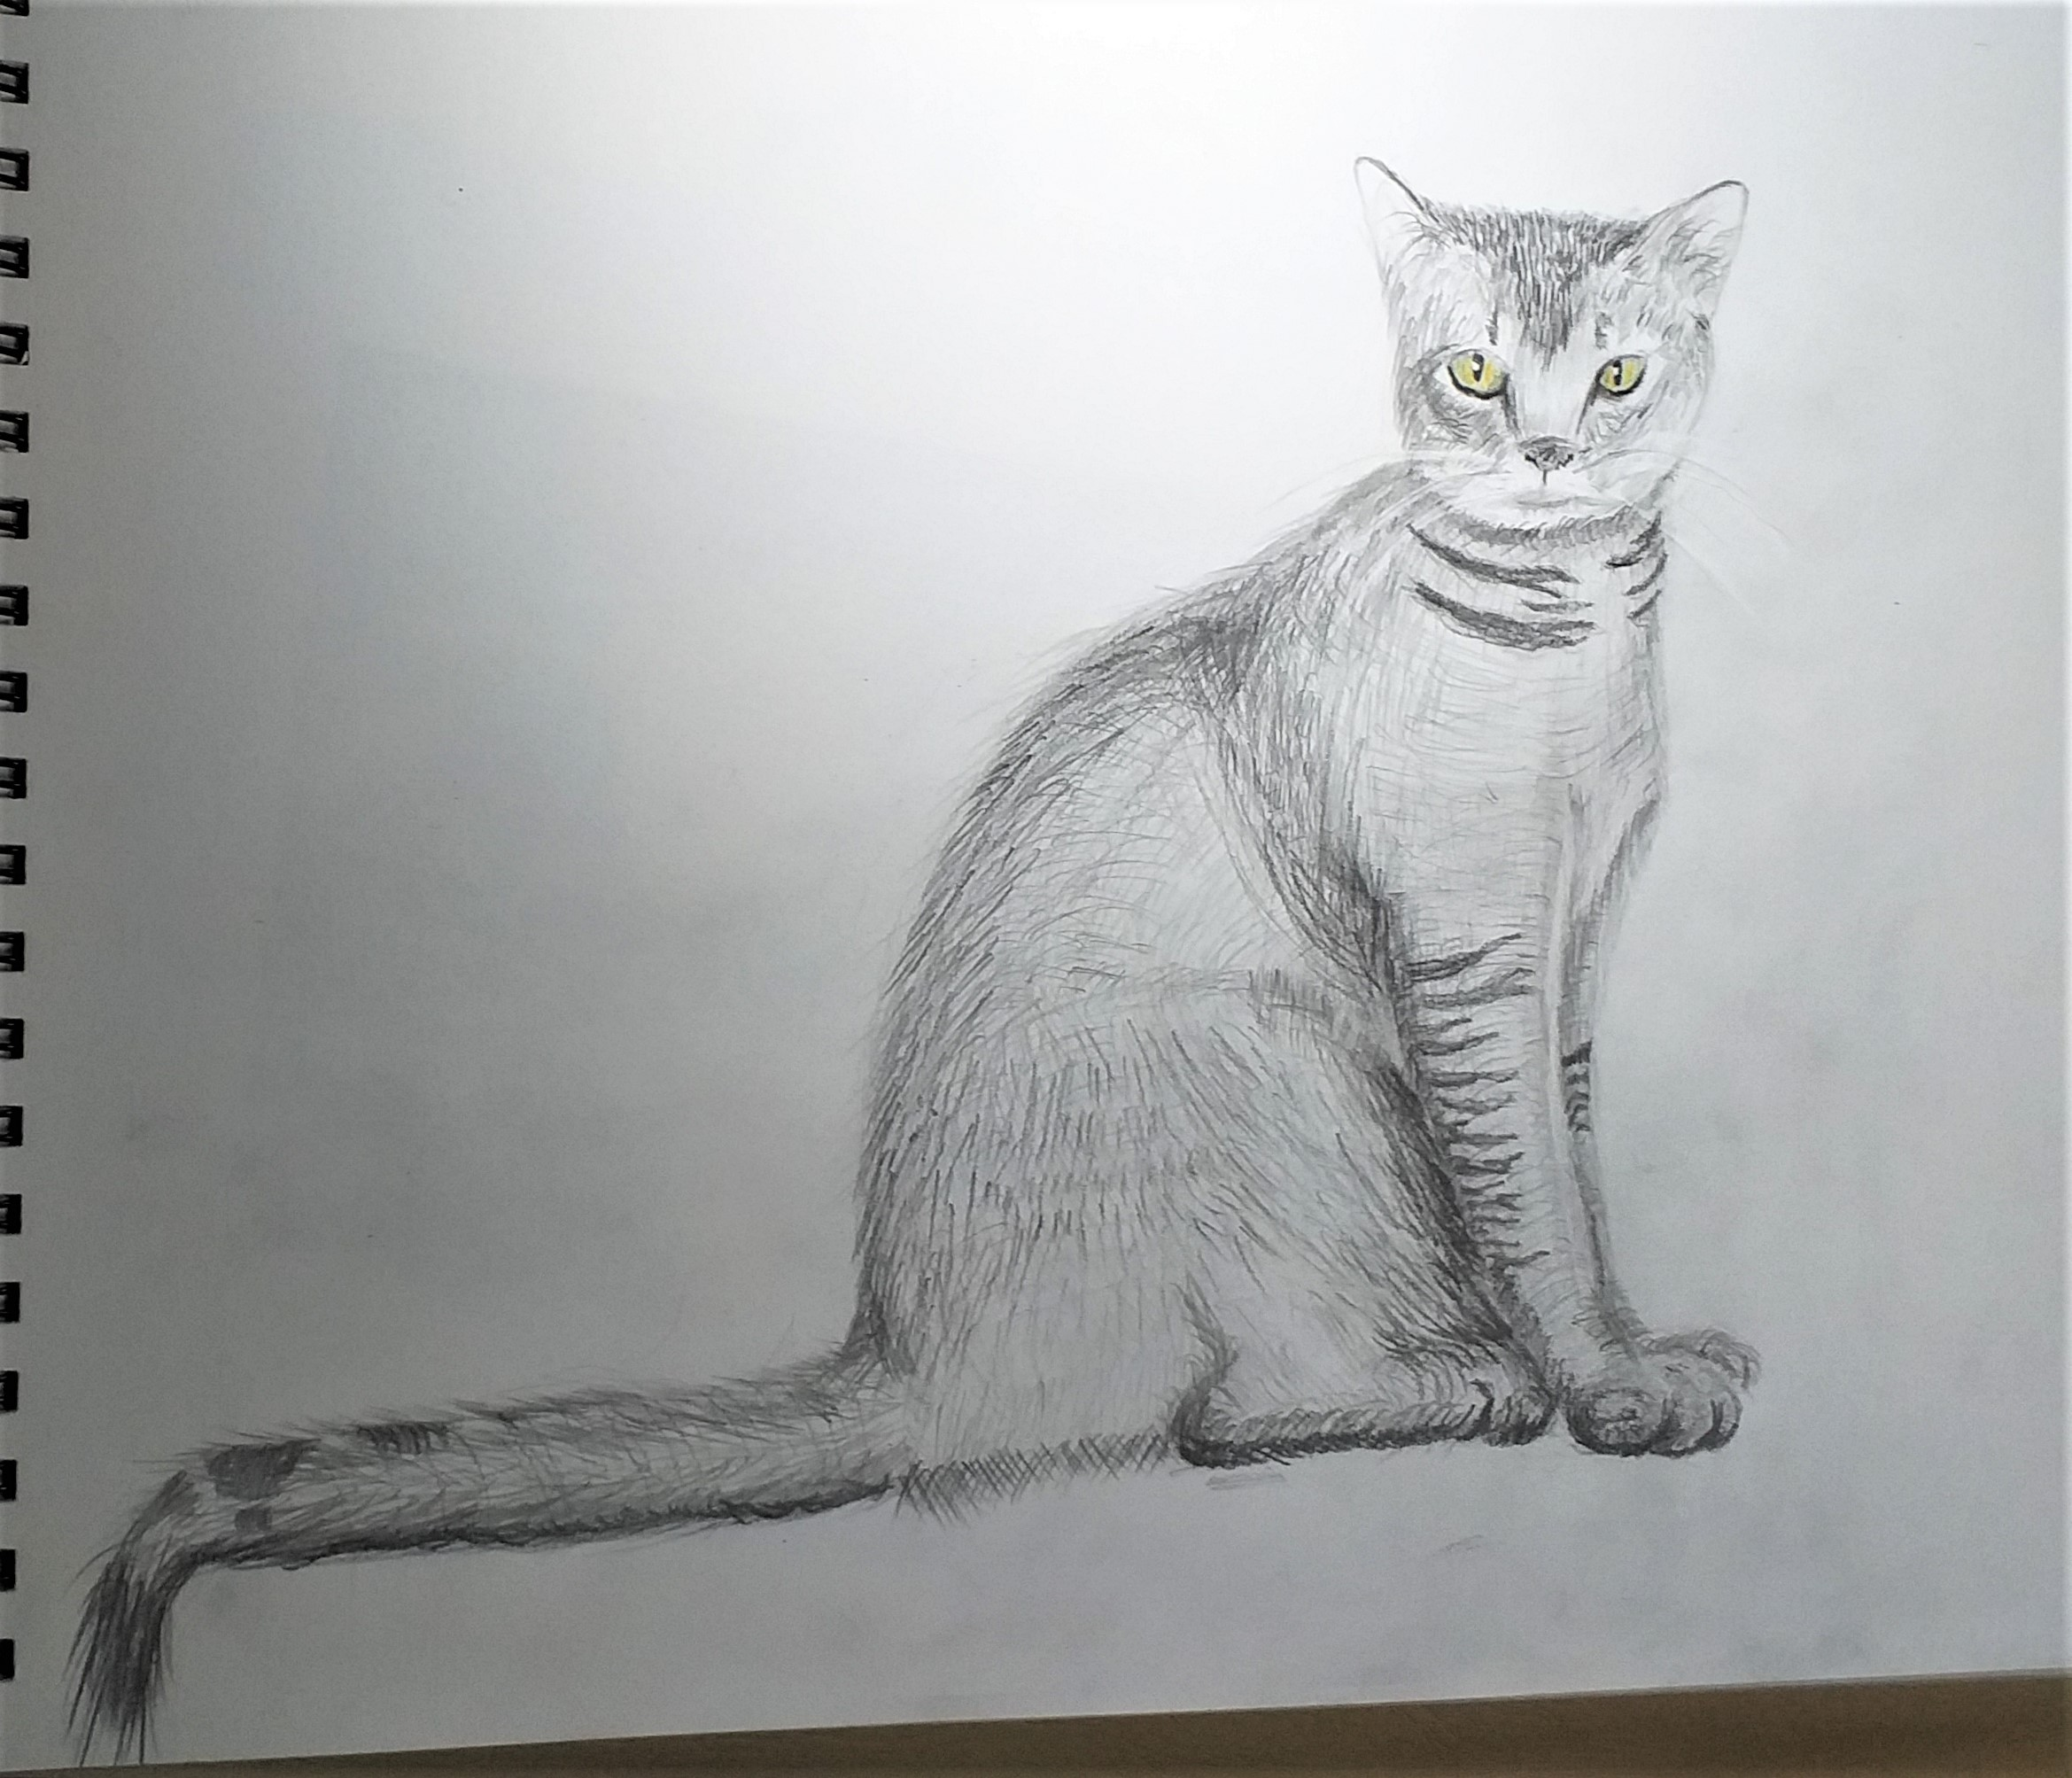 Drawing of a cat by Luke